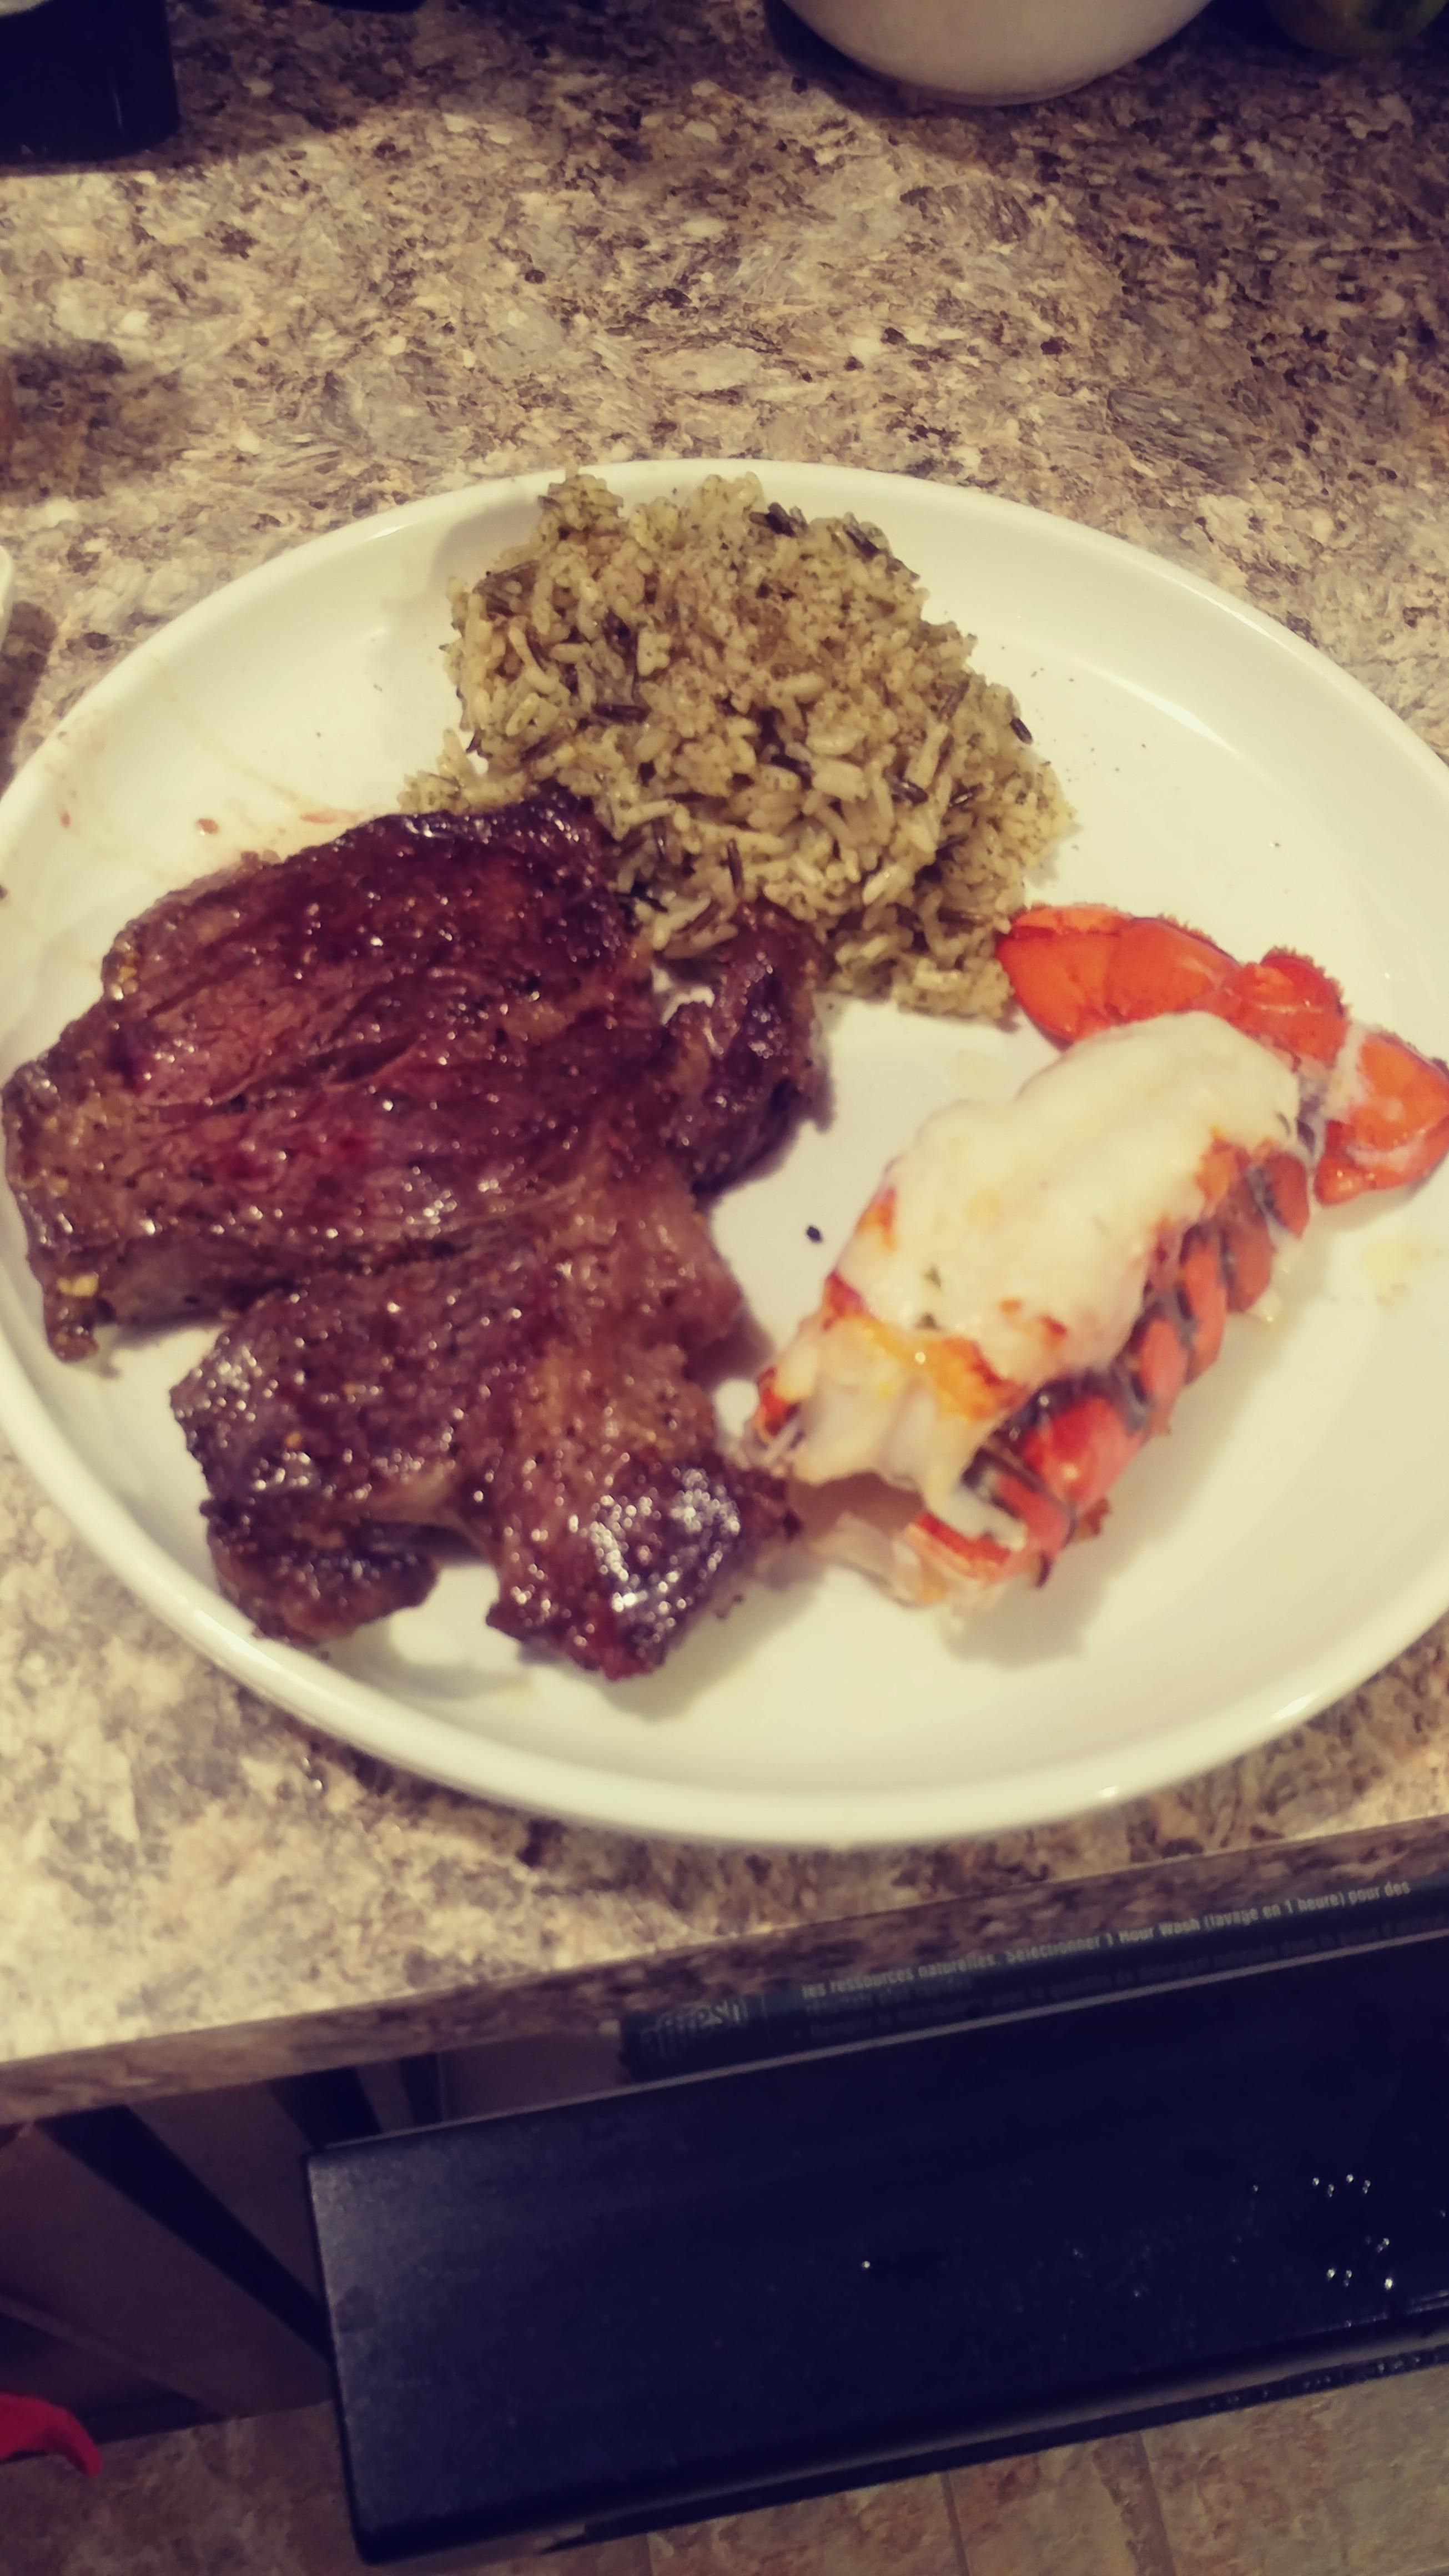 Made surf and turf for the wifes 30th bday Shes spoiled